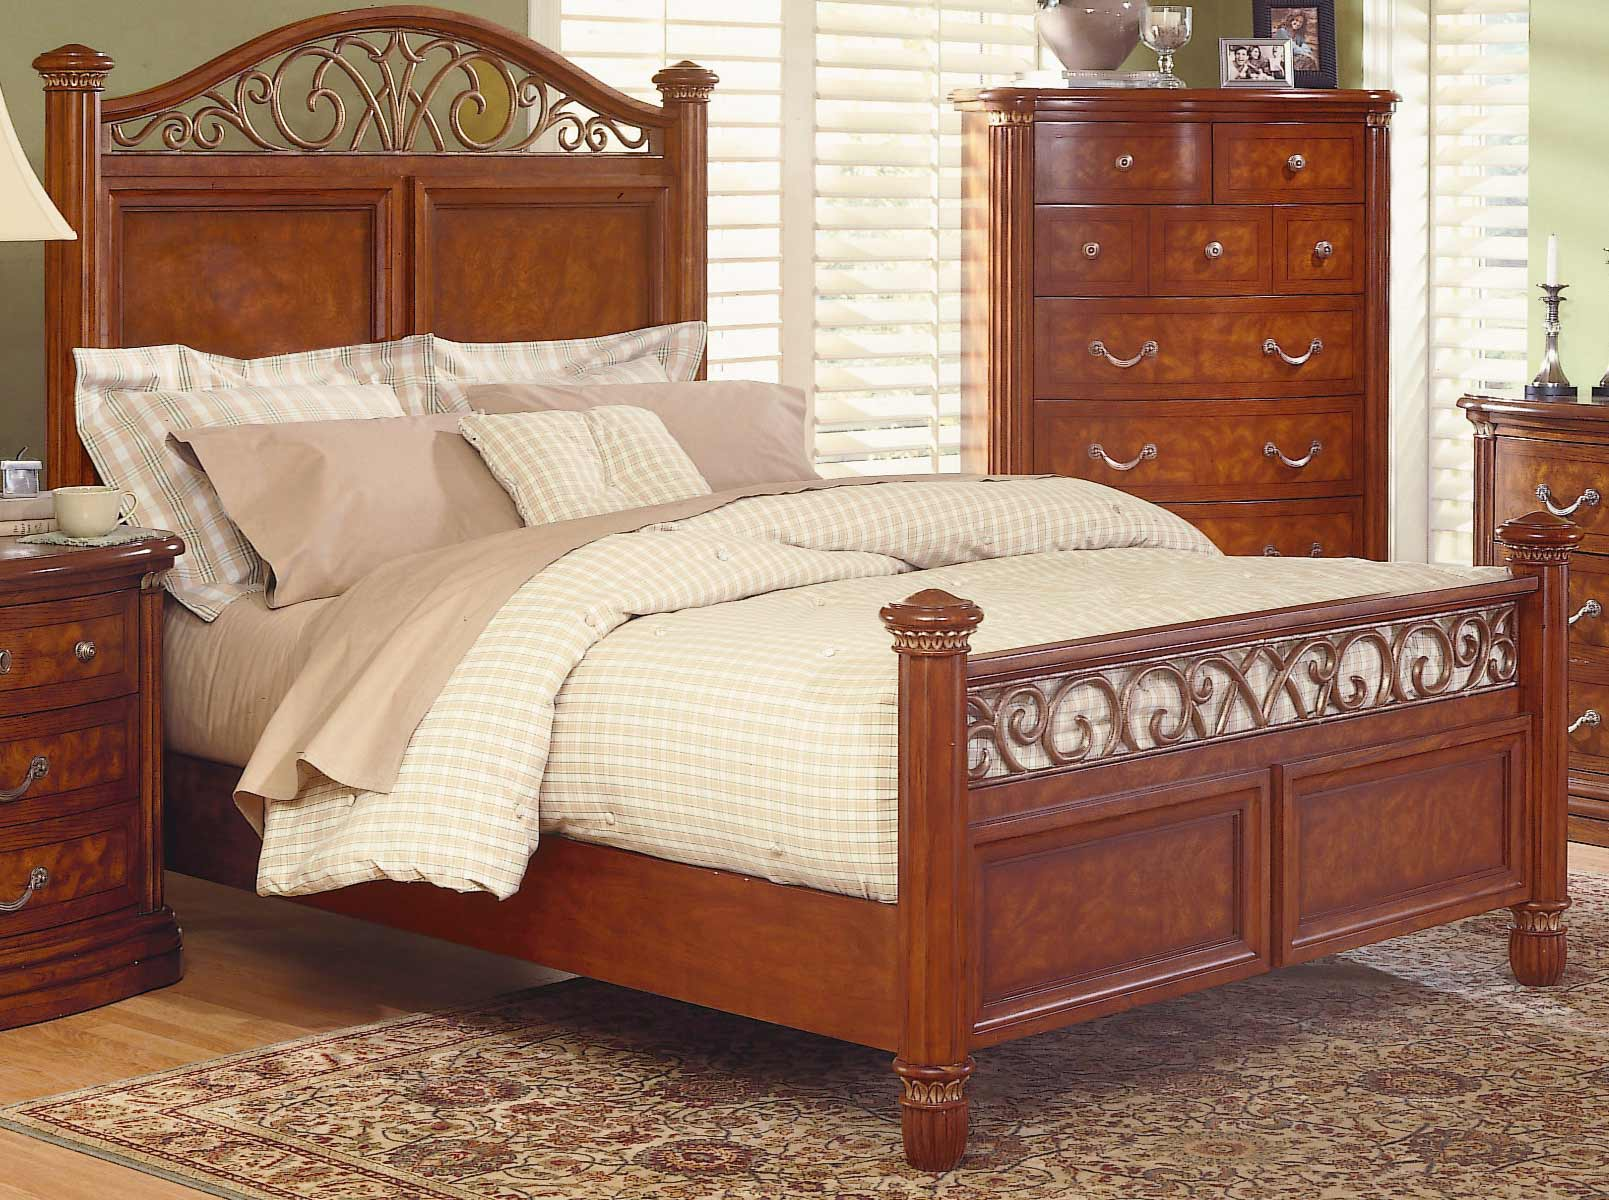 Homelegance Neo-Contempo Bed